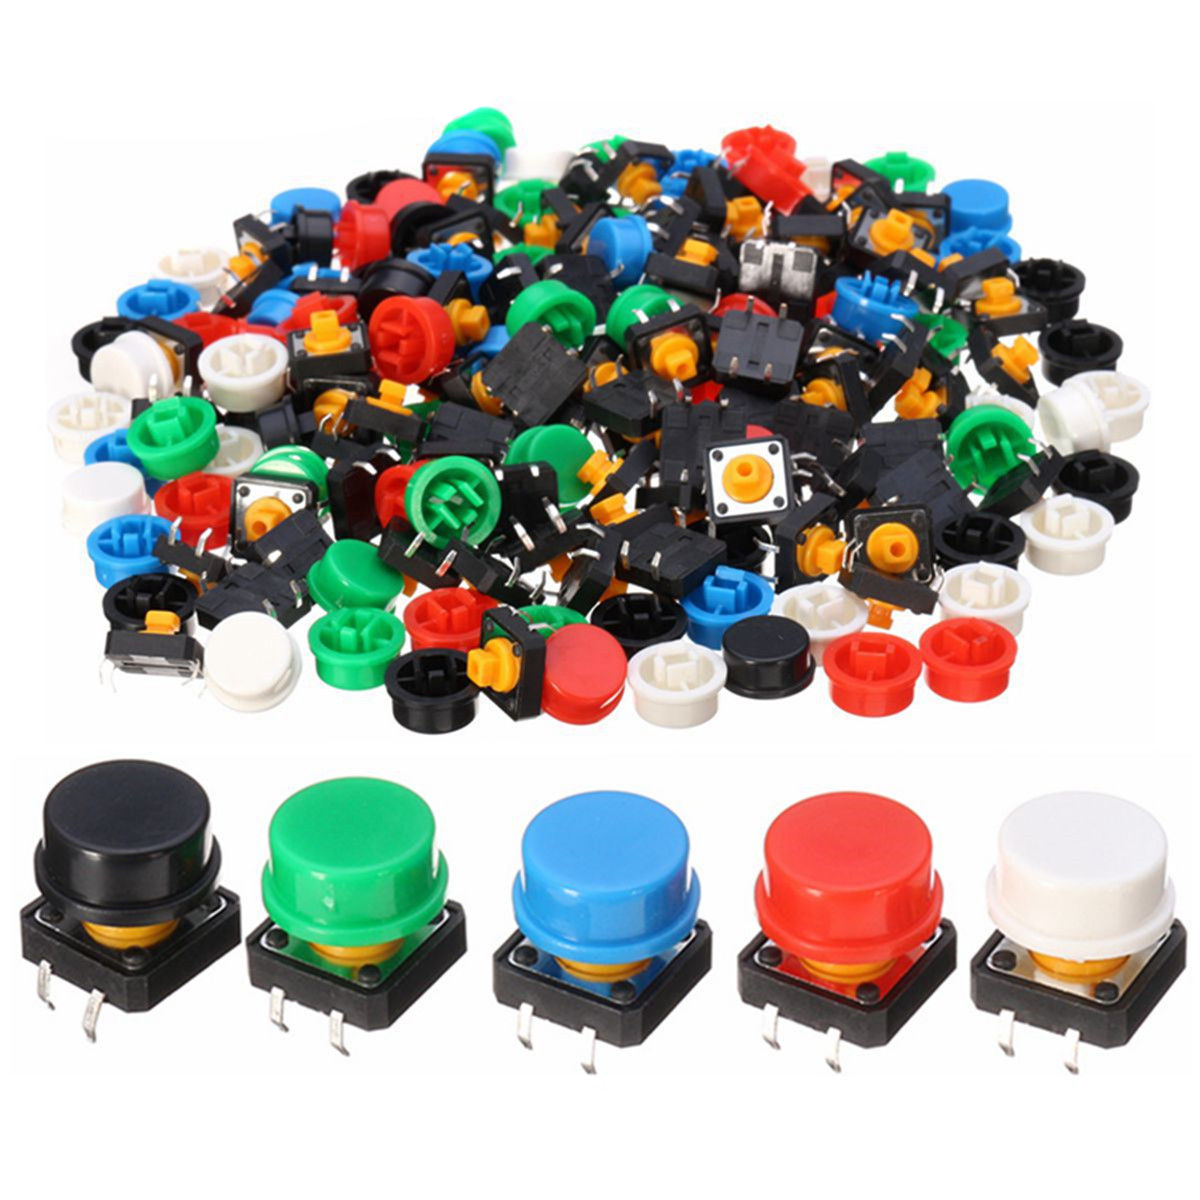 100pcs 12 x12x 7.3mm Tactile Switch Tact Push Button Momentary 5 Color Round Cap